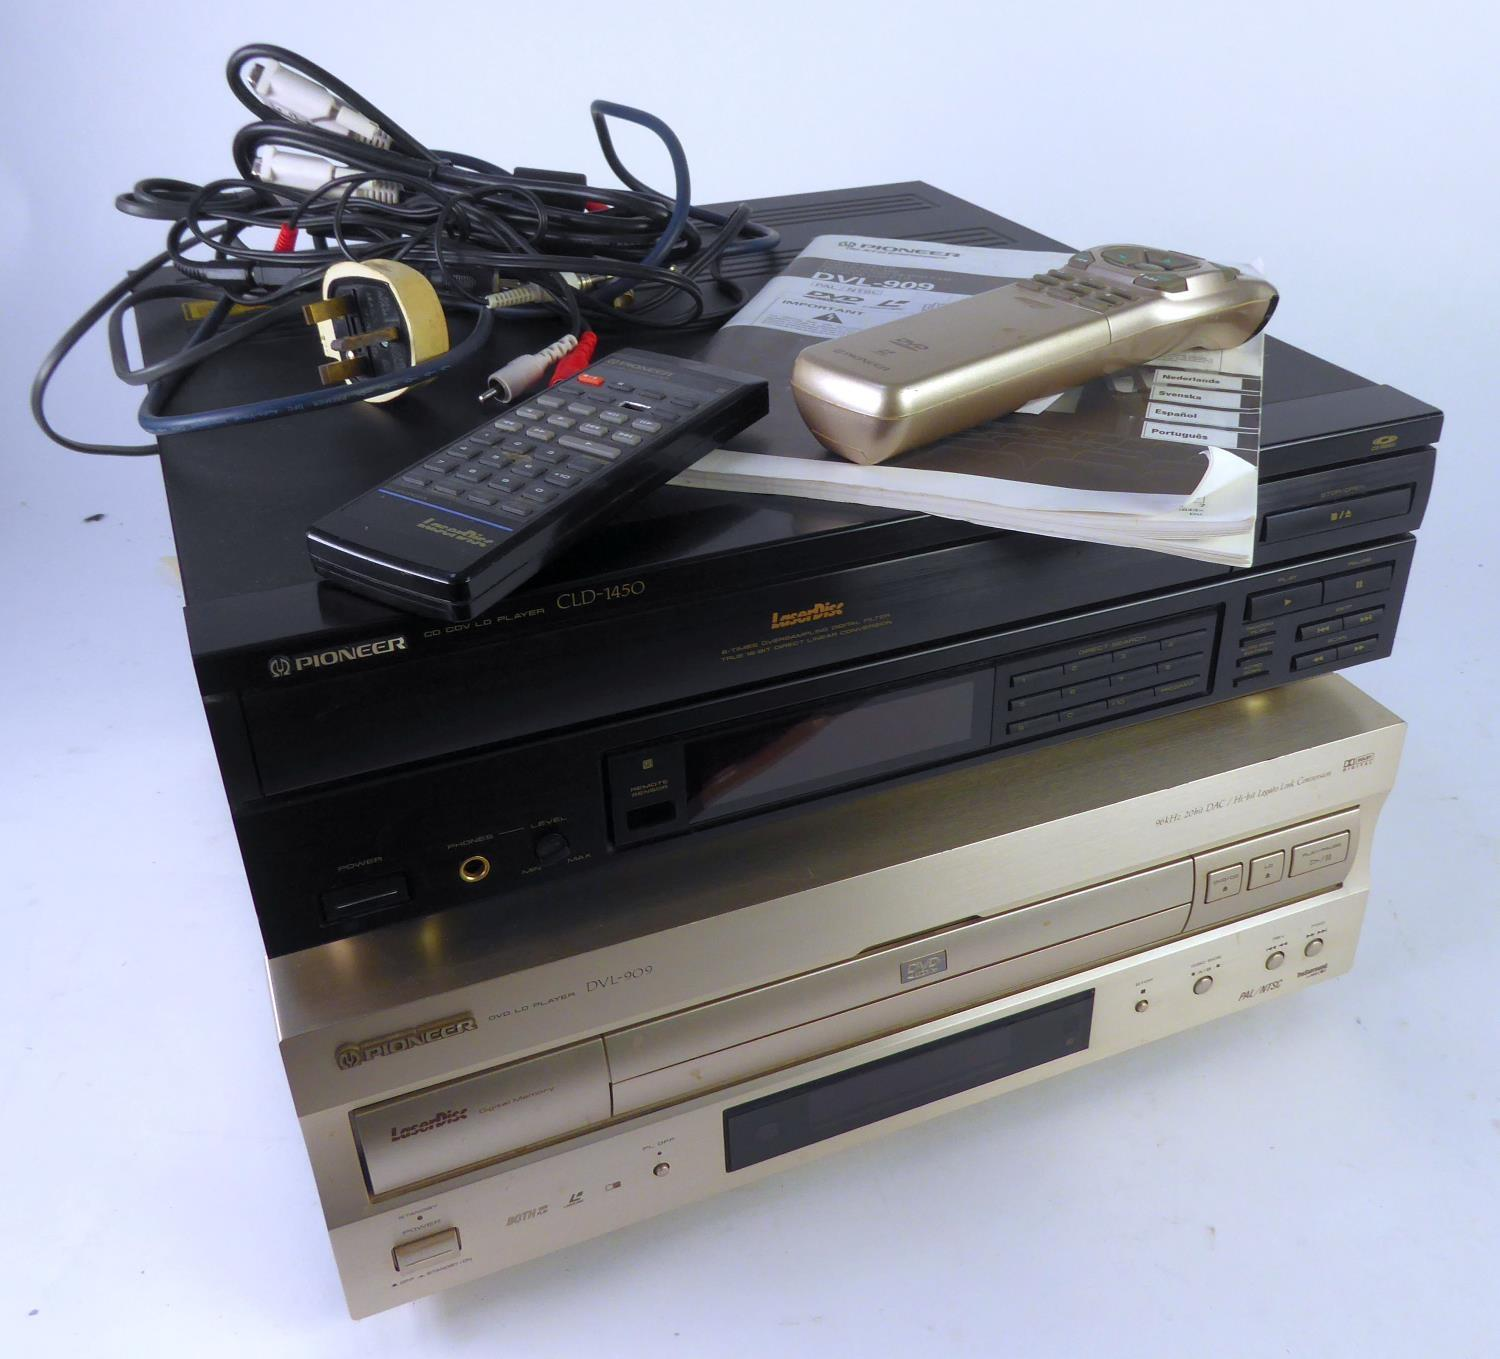 Lot 324 - PIONEER LASER DISC PLAYER, model CLD-1450, plus remote control, TOGETHER WITH ANOTHER PIONEER